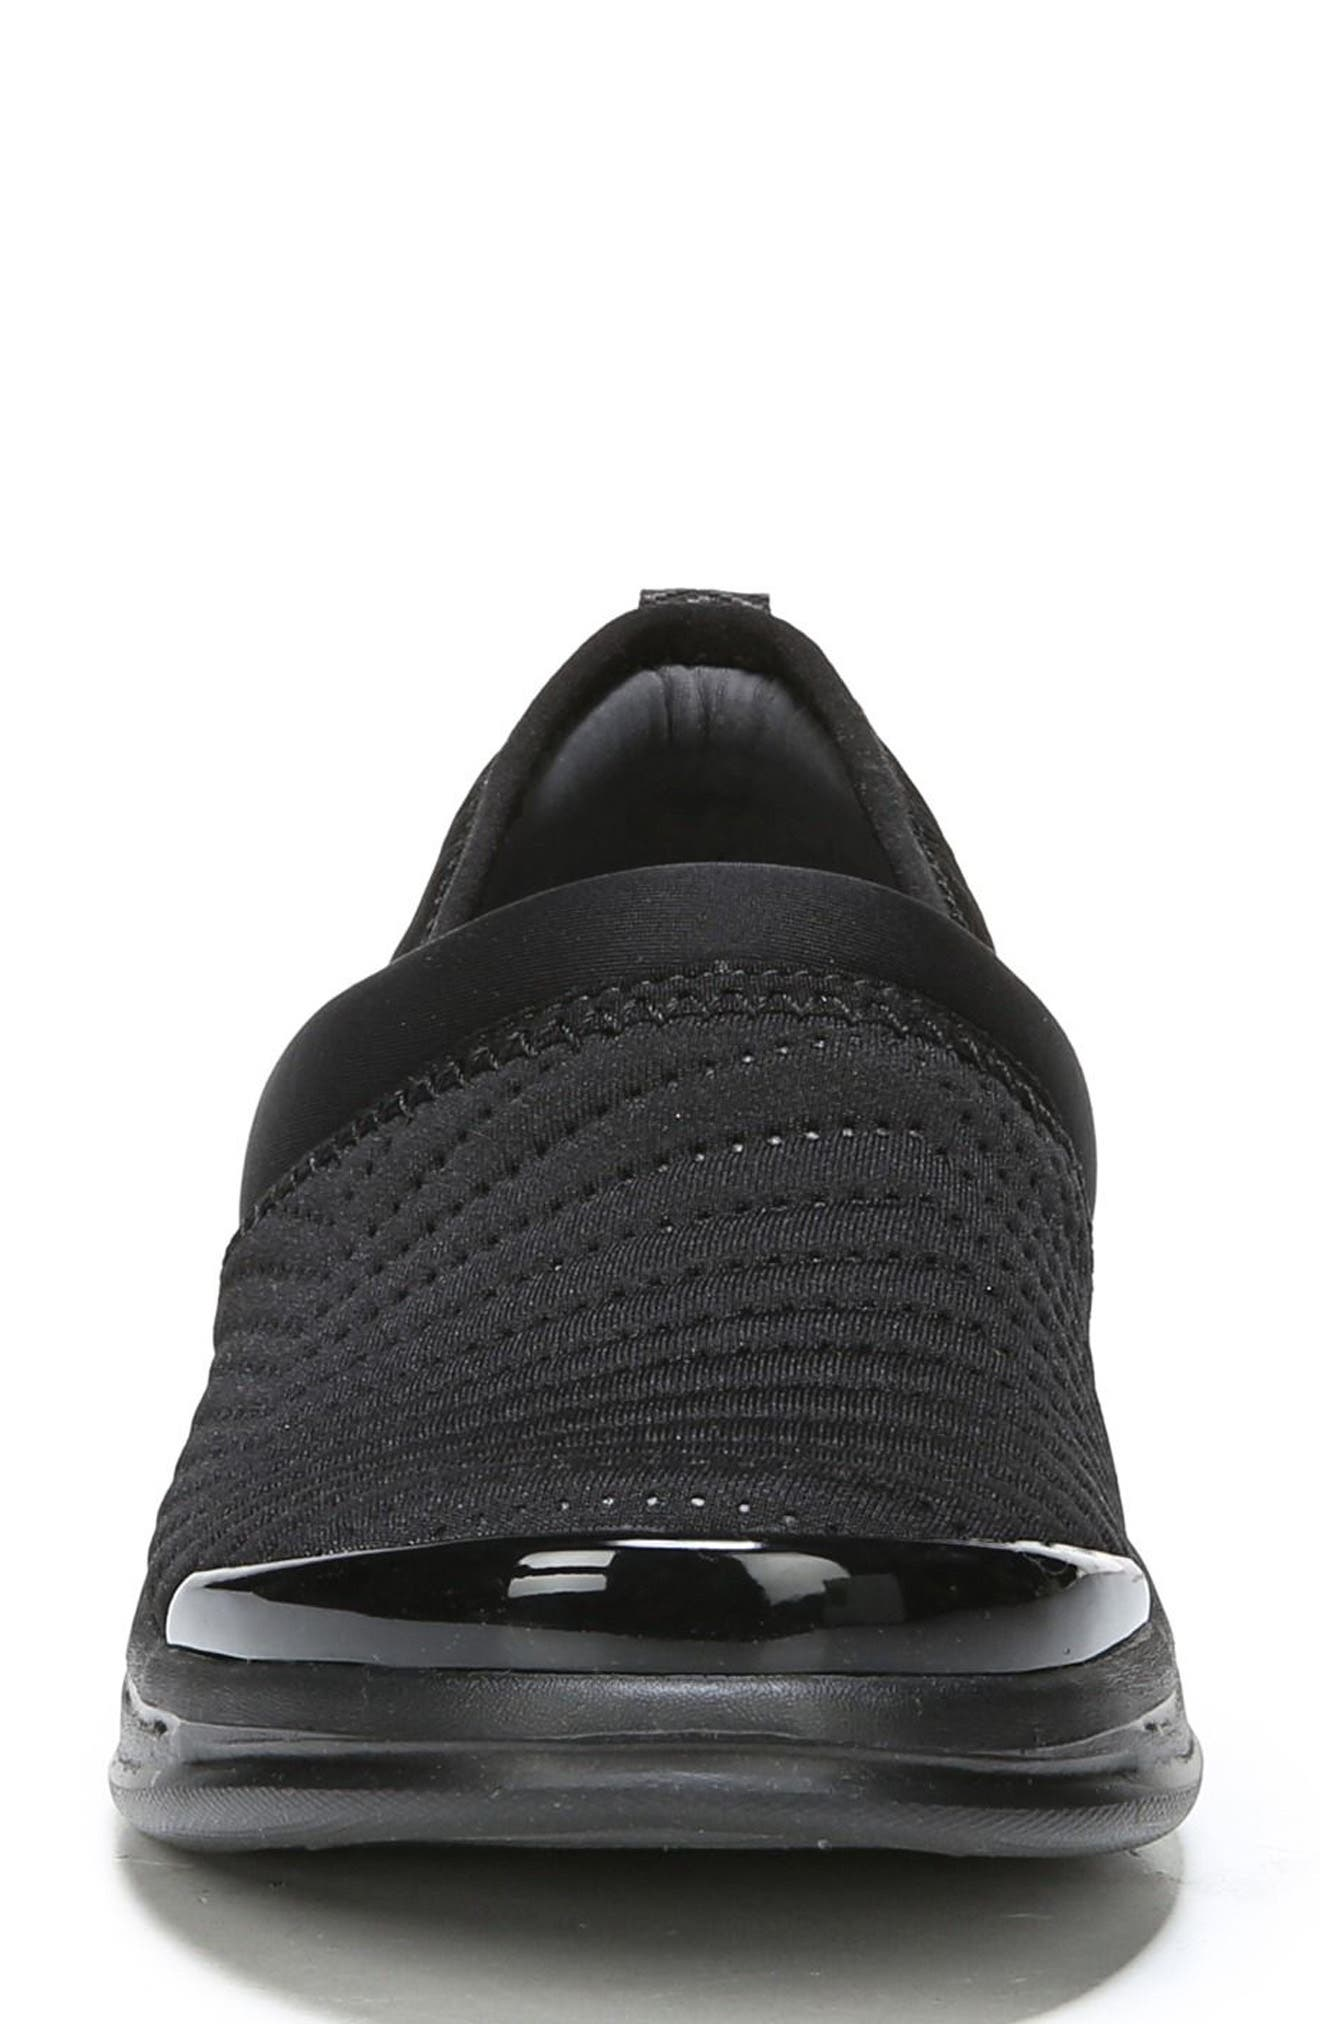 Coco Slip-On Sneaker,                             Alternate thumbnail 4, color,                             Black Fabric